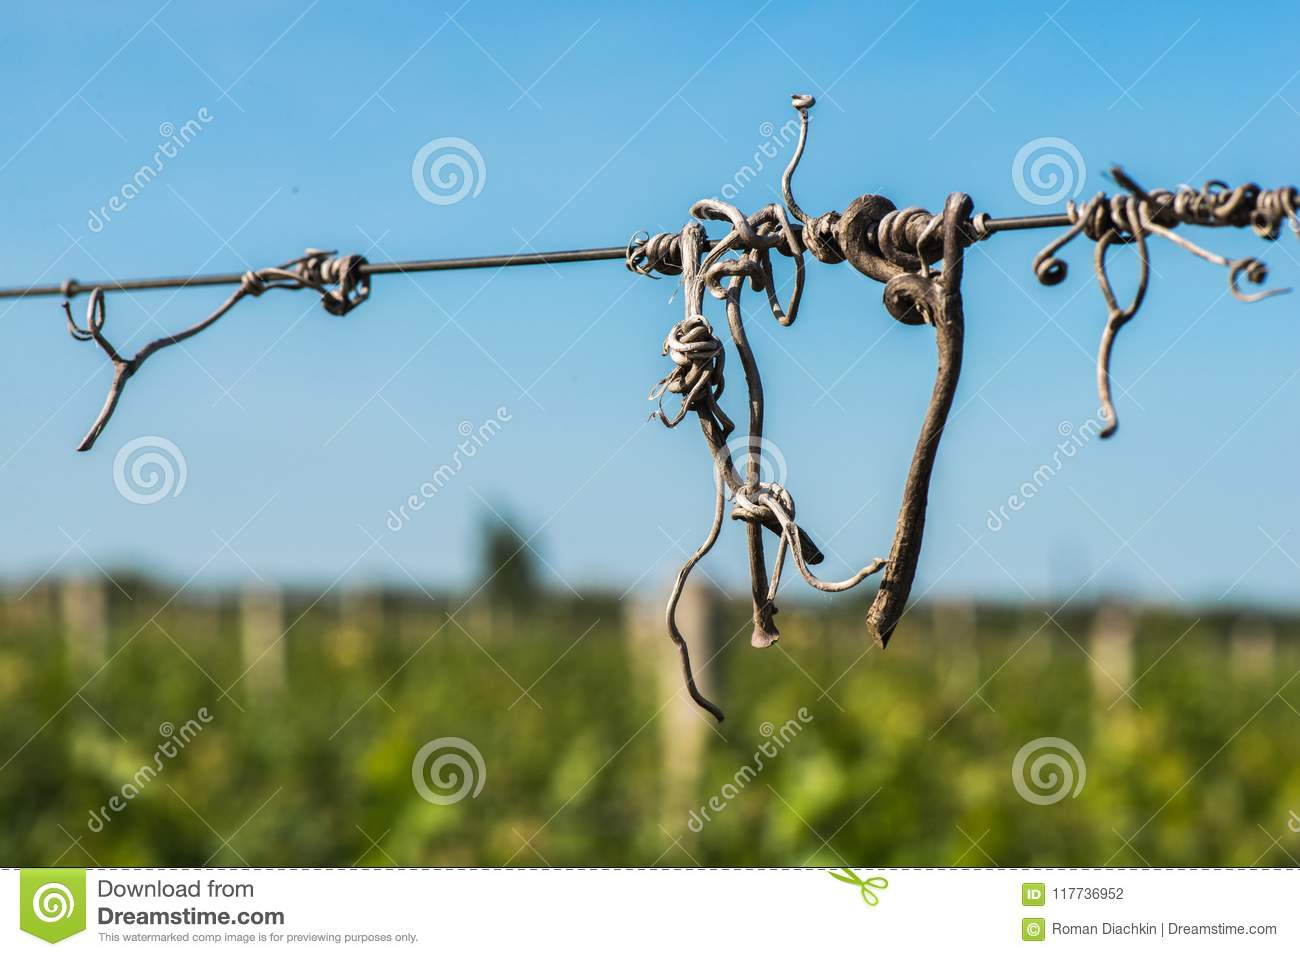 Cut Vines Crook On The Guide Wire In The Vineyard Stock Photo ...